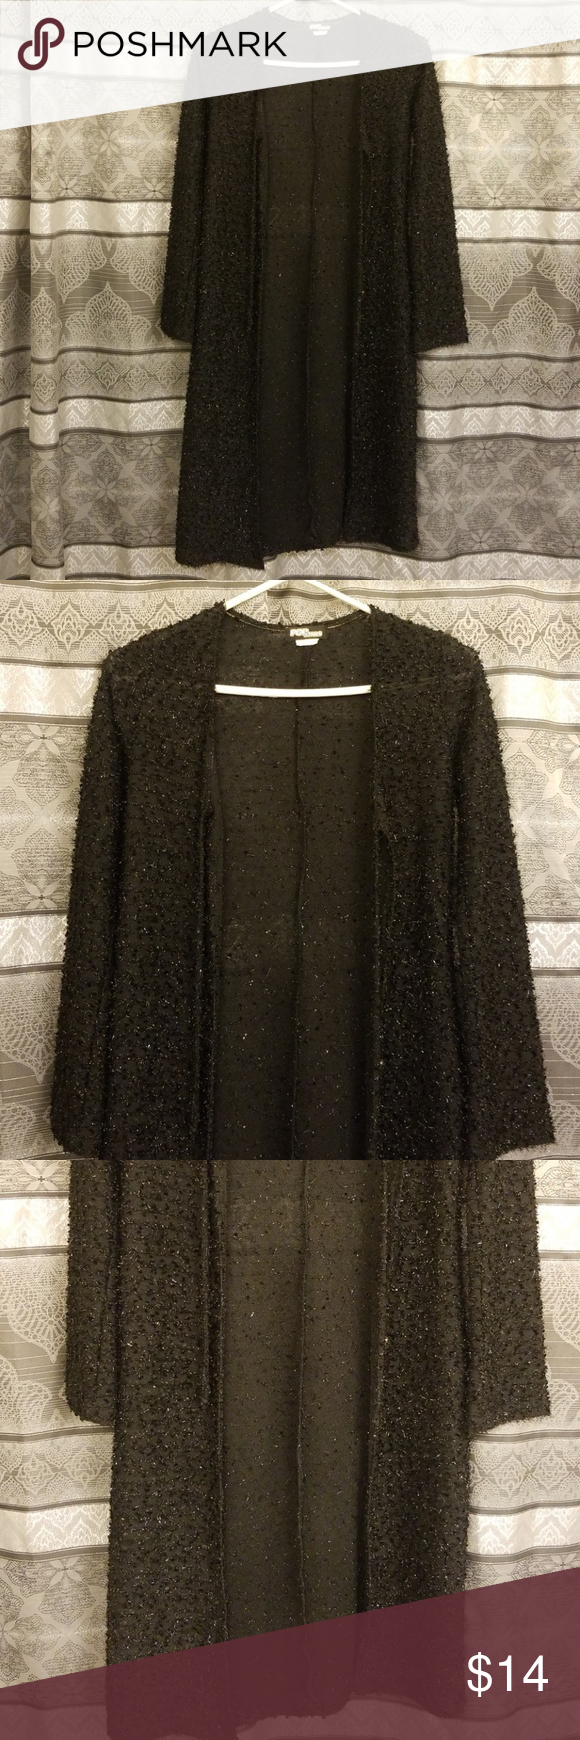 , Long Cardigan Size medium petite womens glittery long cover up..In excellent condition.. Pop Star Other, My Pop Star Kda Blog, My Pop Star Kda Blog